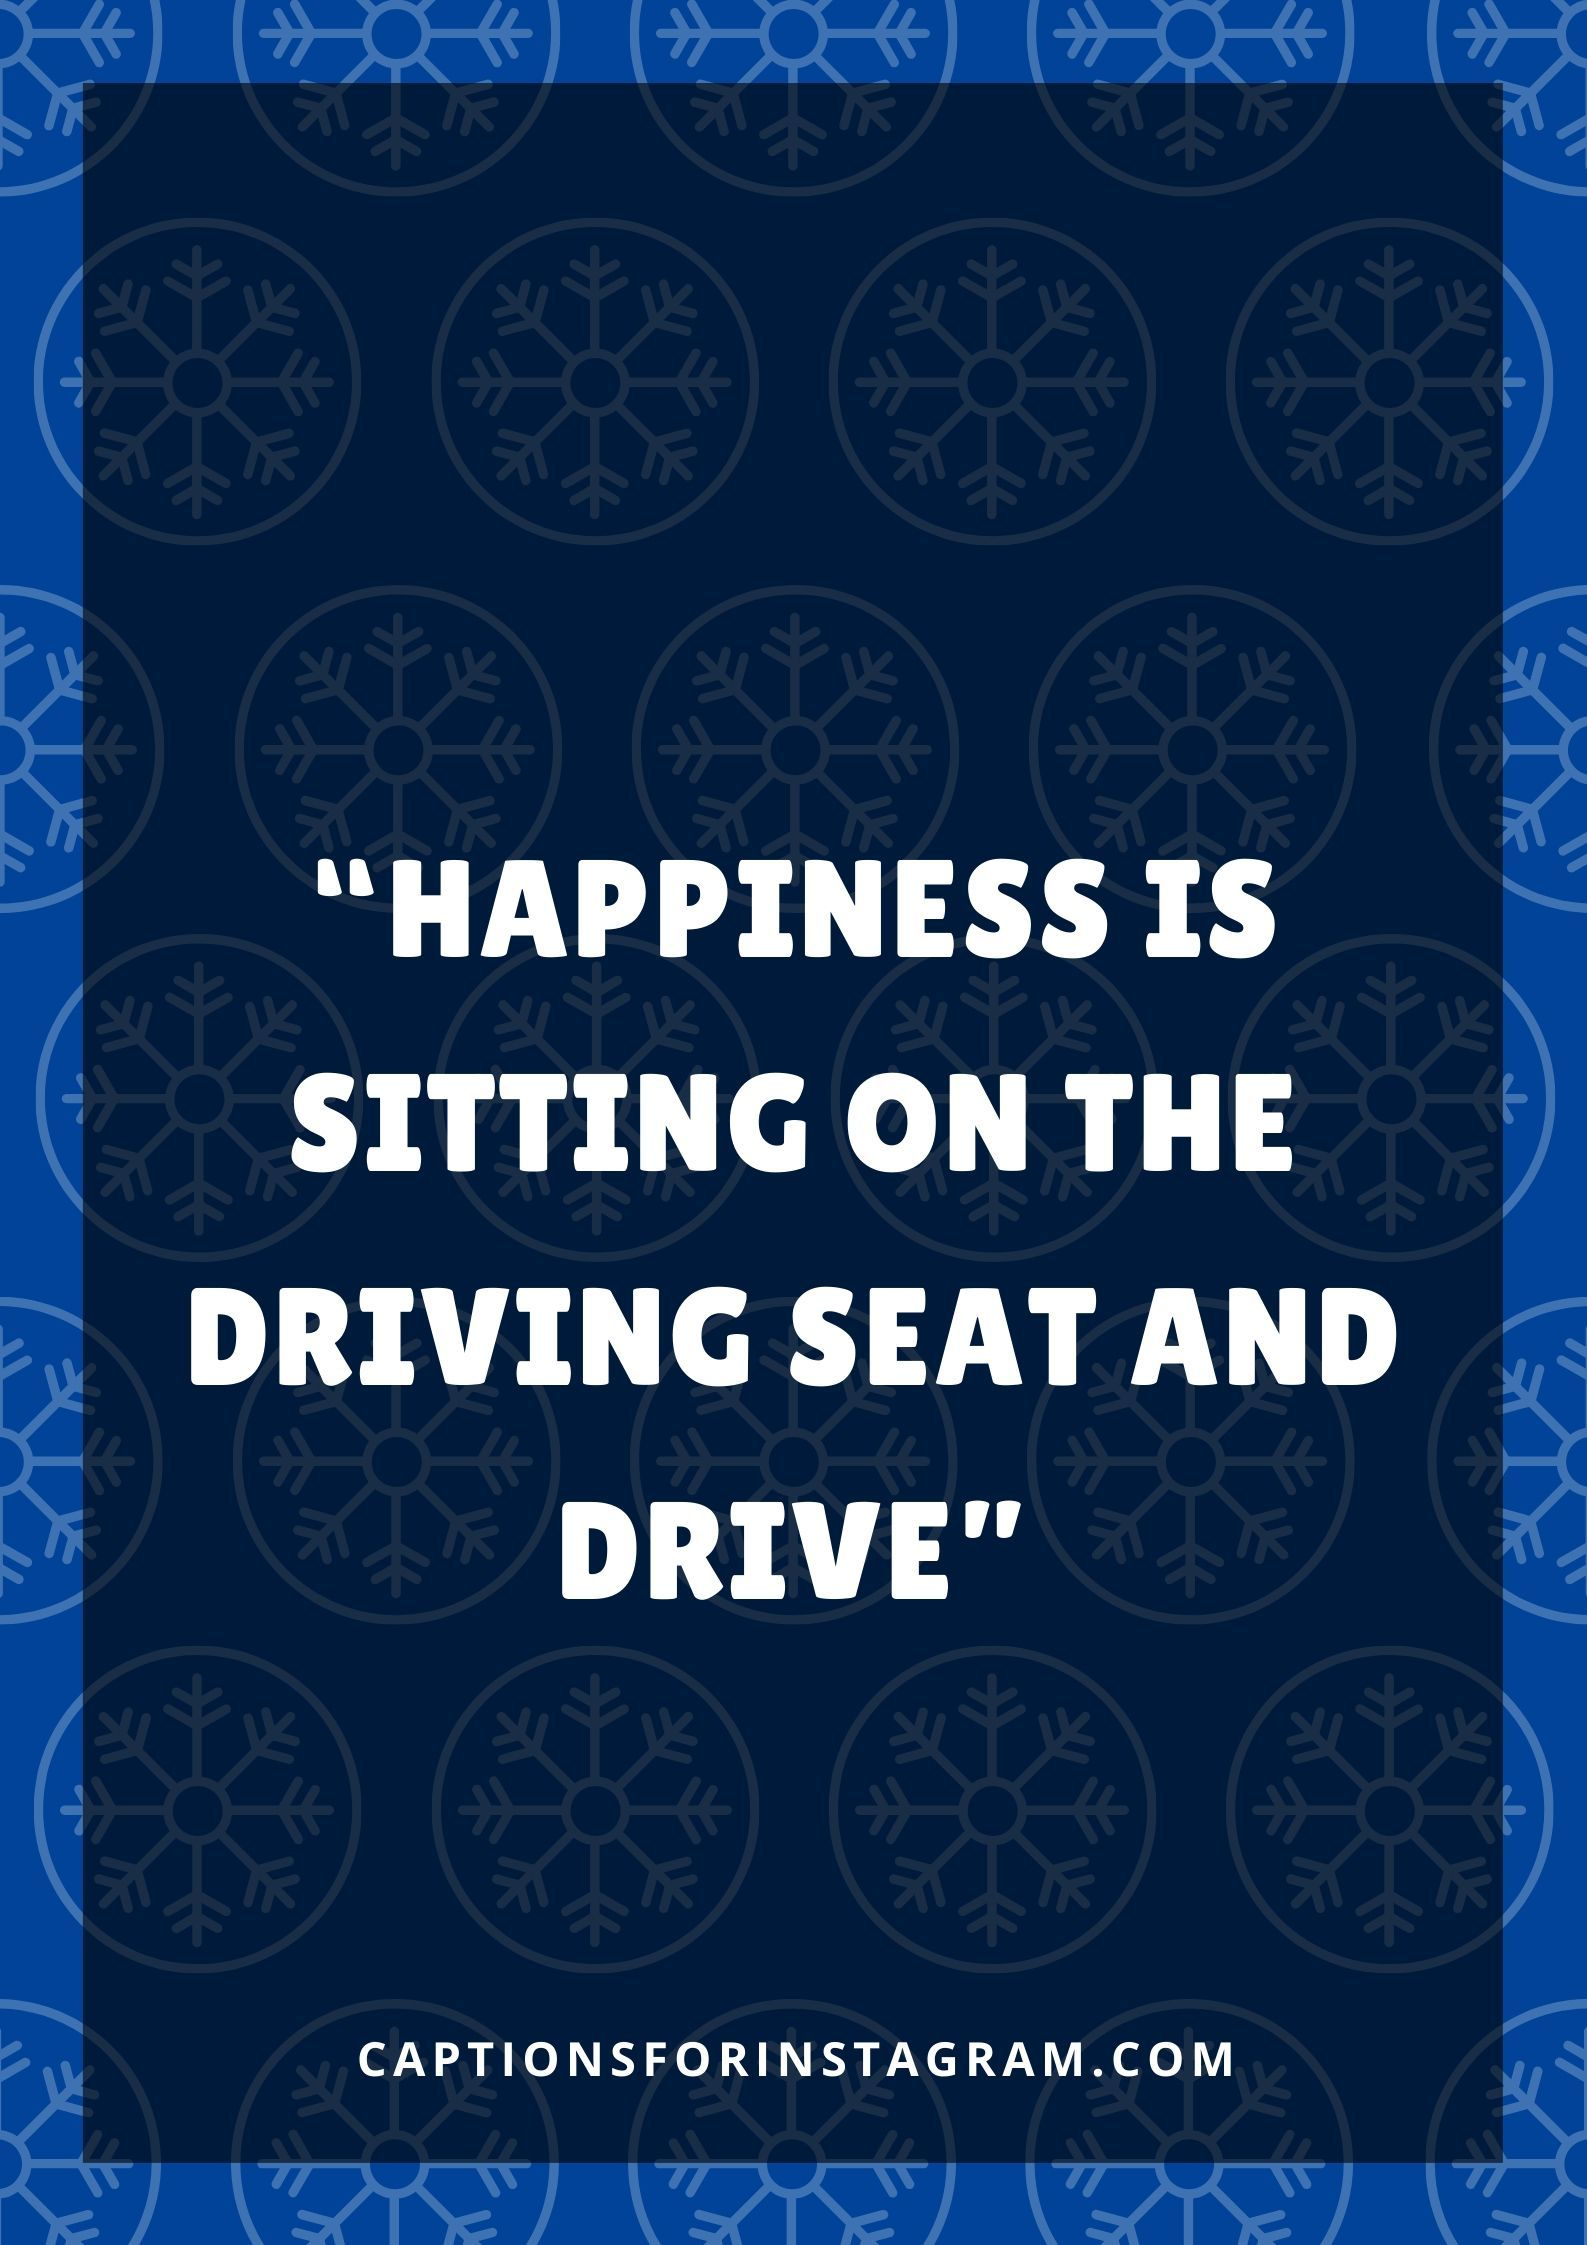 Happiness Is Sitting On The Driving Seat And Drive Short New Car Captions For Instagram Driving Quotes Instagram Captions Instagram Funny